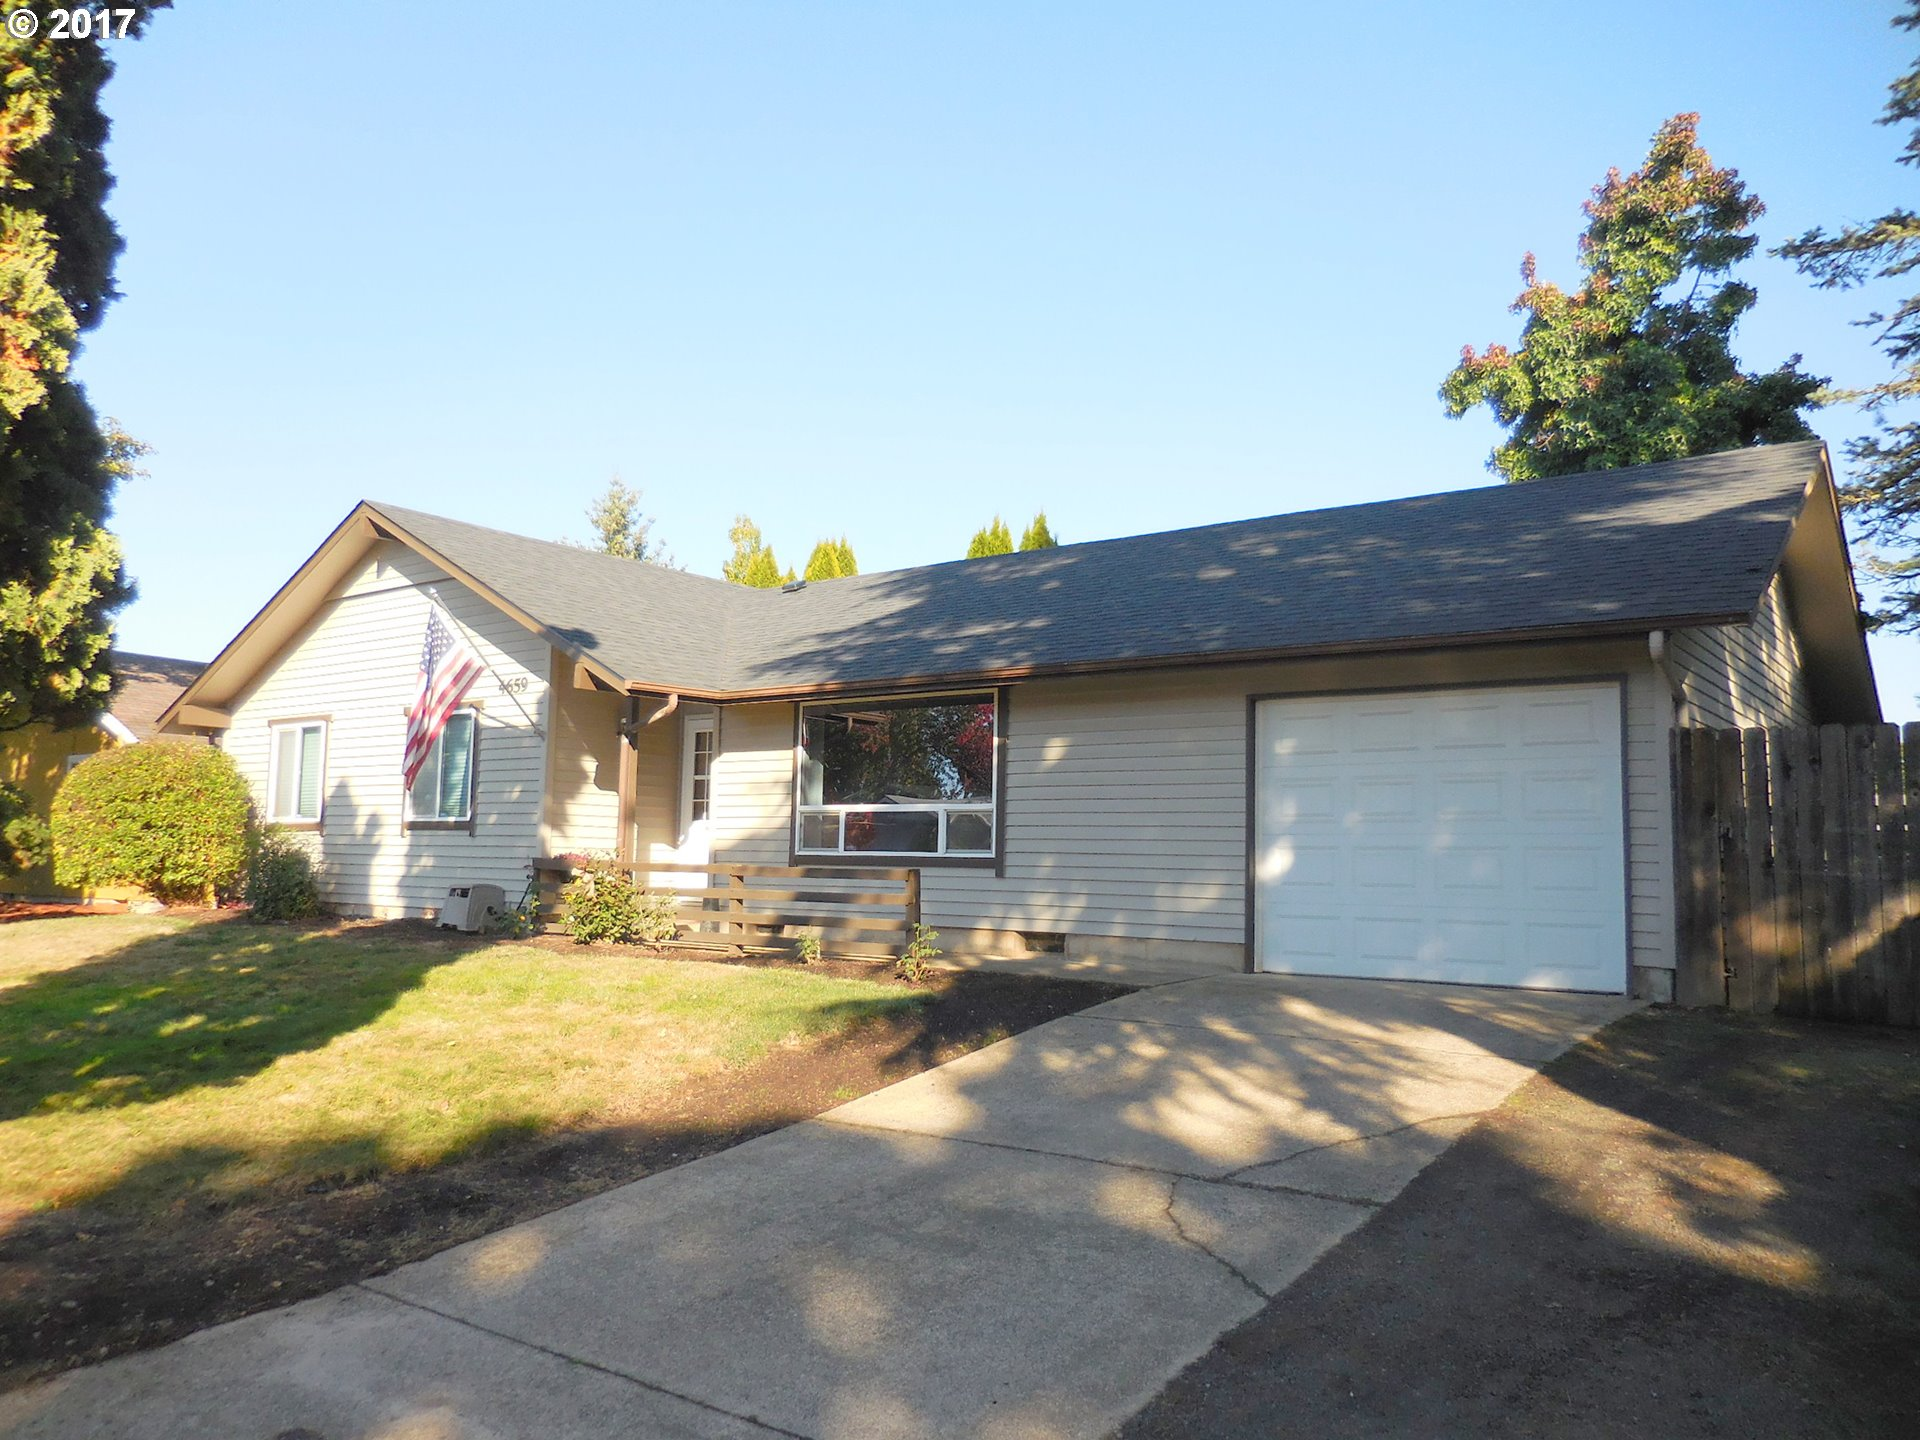 4659 SCOTTDALE ST, Eugene OR 97404